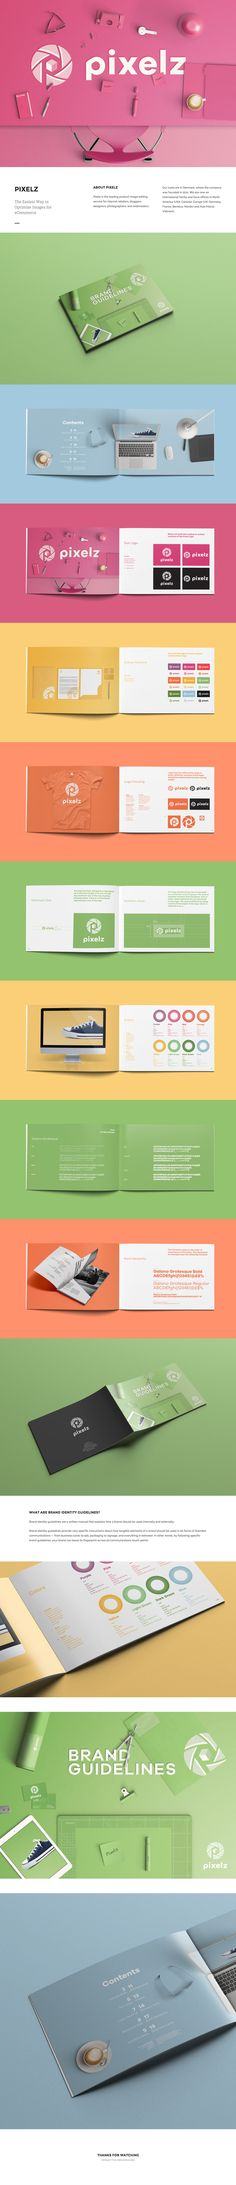 Graphic design inspiration - Game of colors